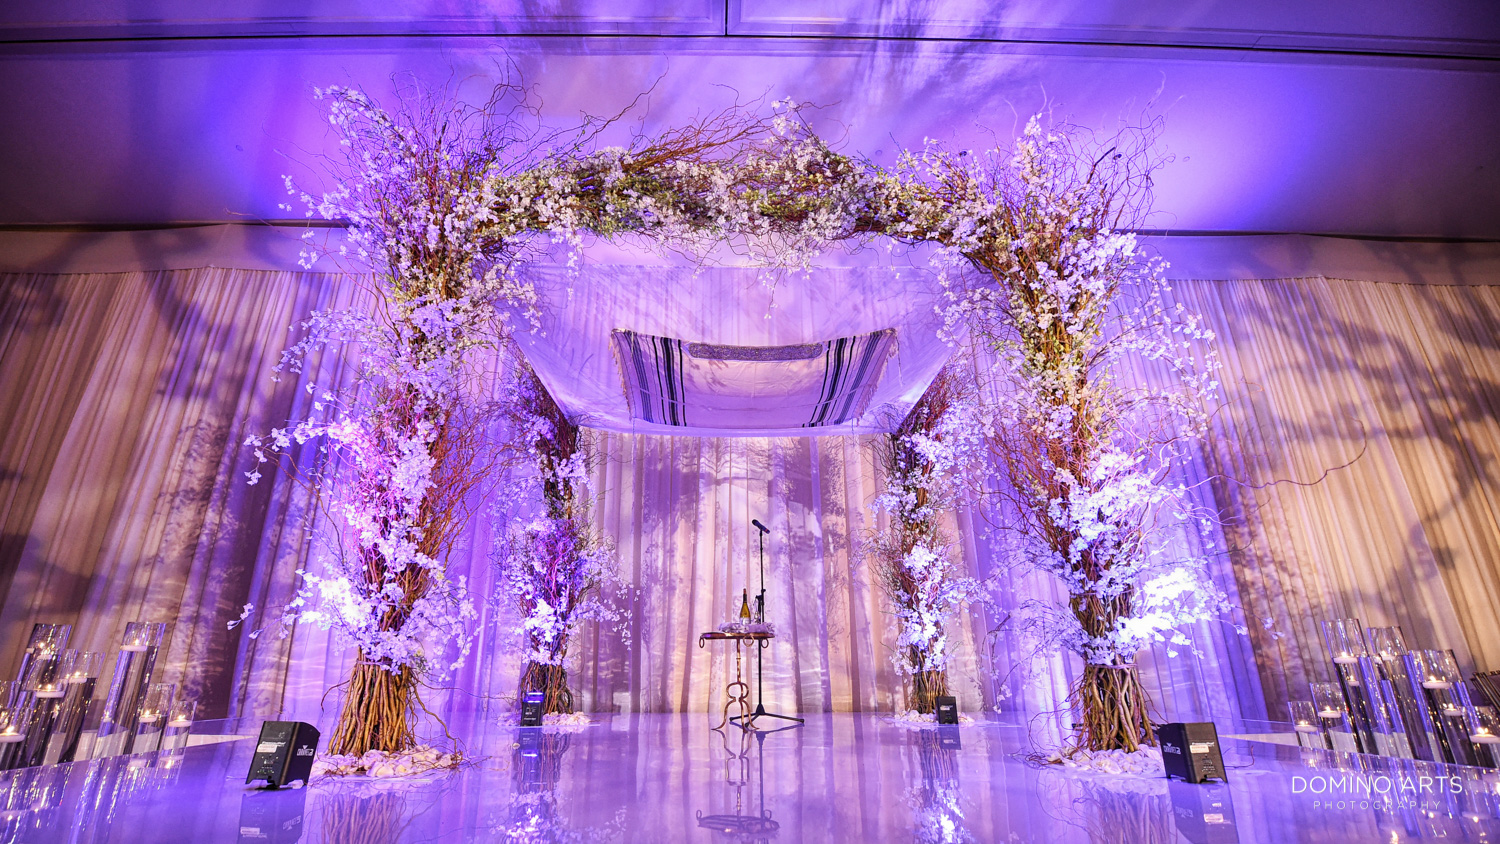 Chuppah Modern Jewish wedding pictures at Trump national Doral in South Florida